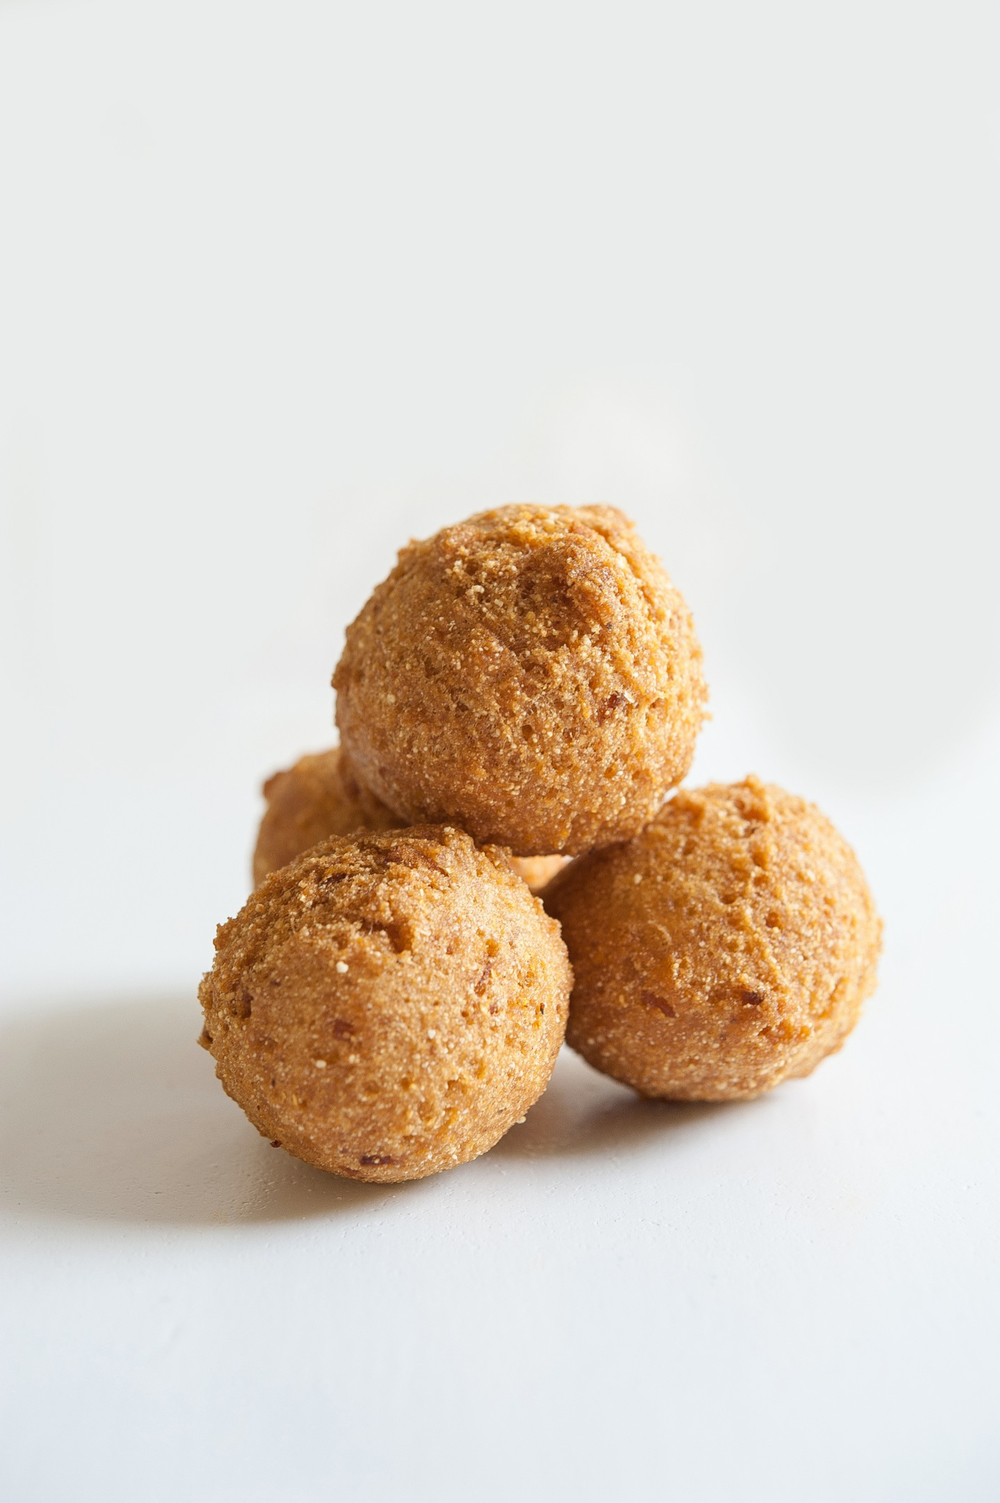 Our hush puppies take on a dessert-like quality with our house dipping sauce (honey, coriander, maple syrup, dash of cayenne)